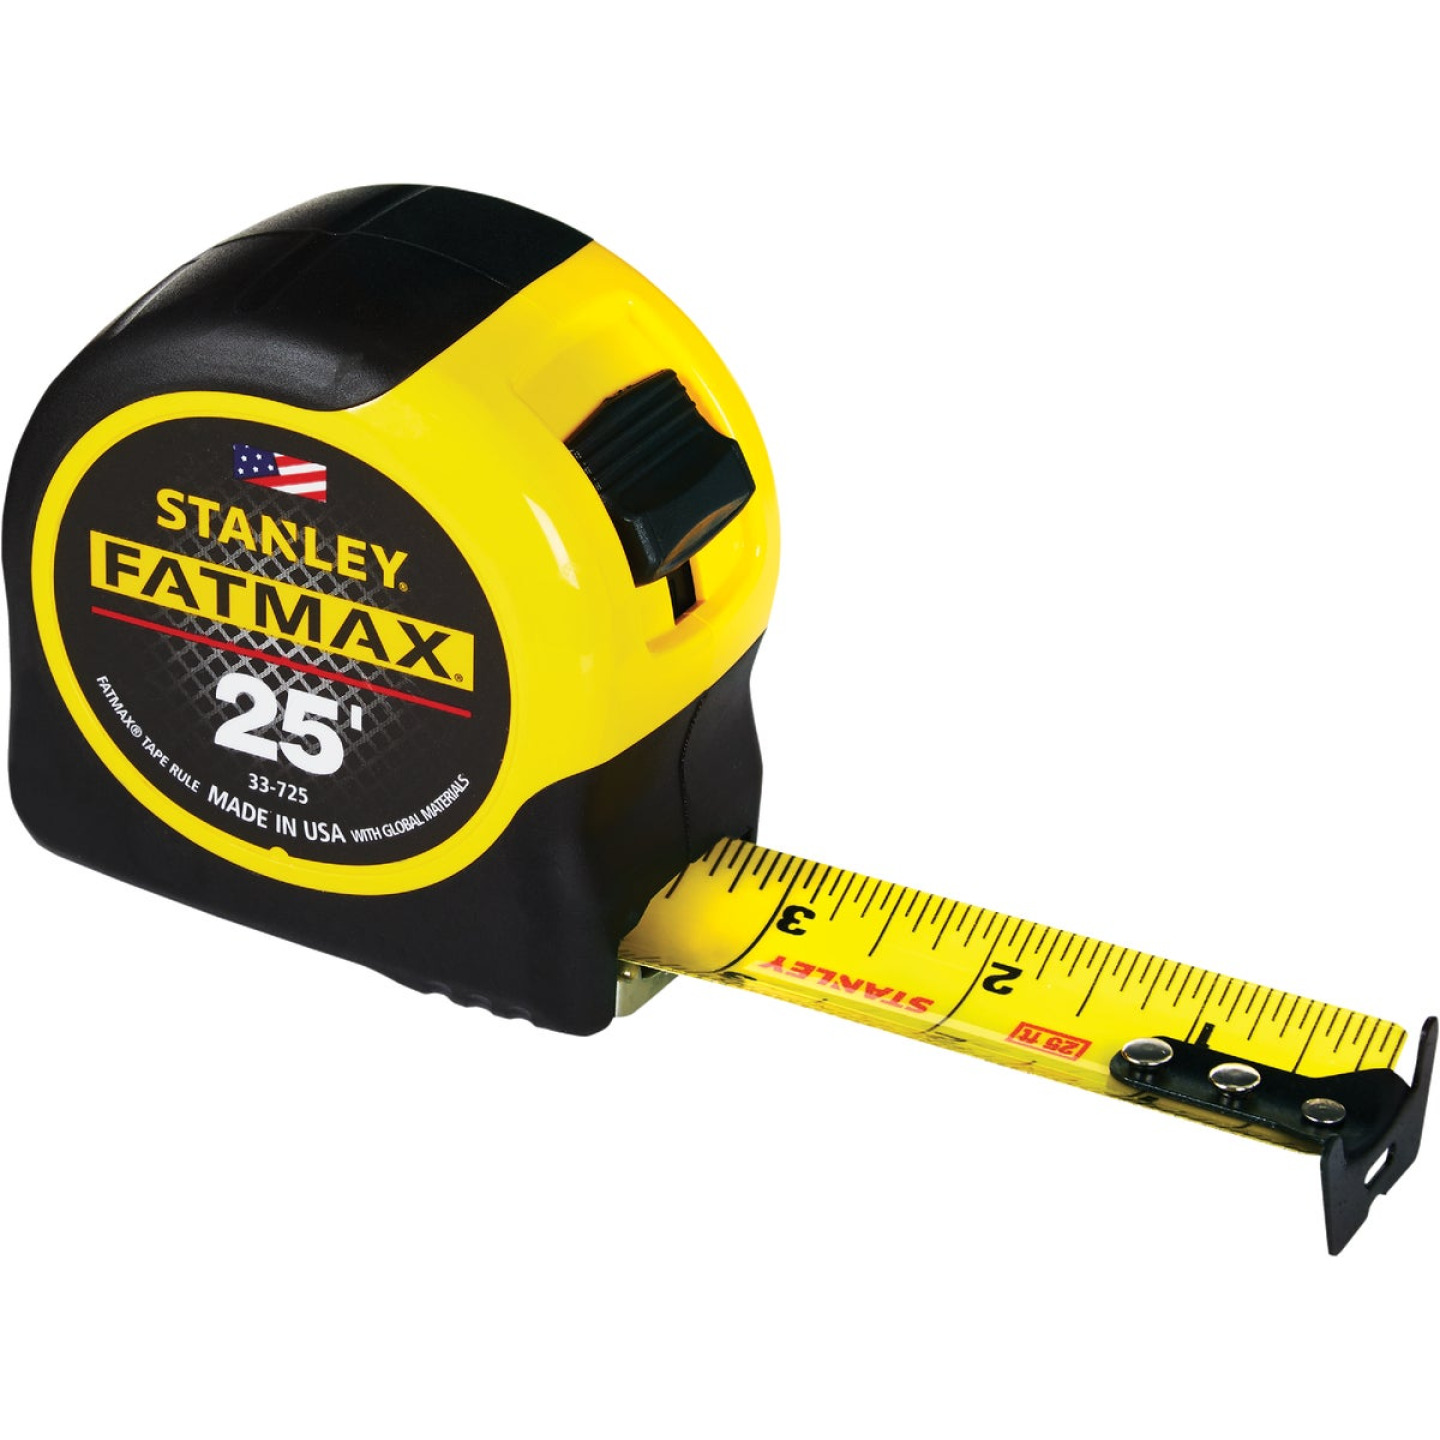 Stanley FatMax 25 Ft. Classic Tape Measure with 11 Ft. Standout Image 1